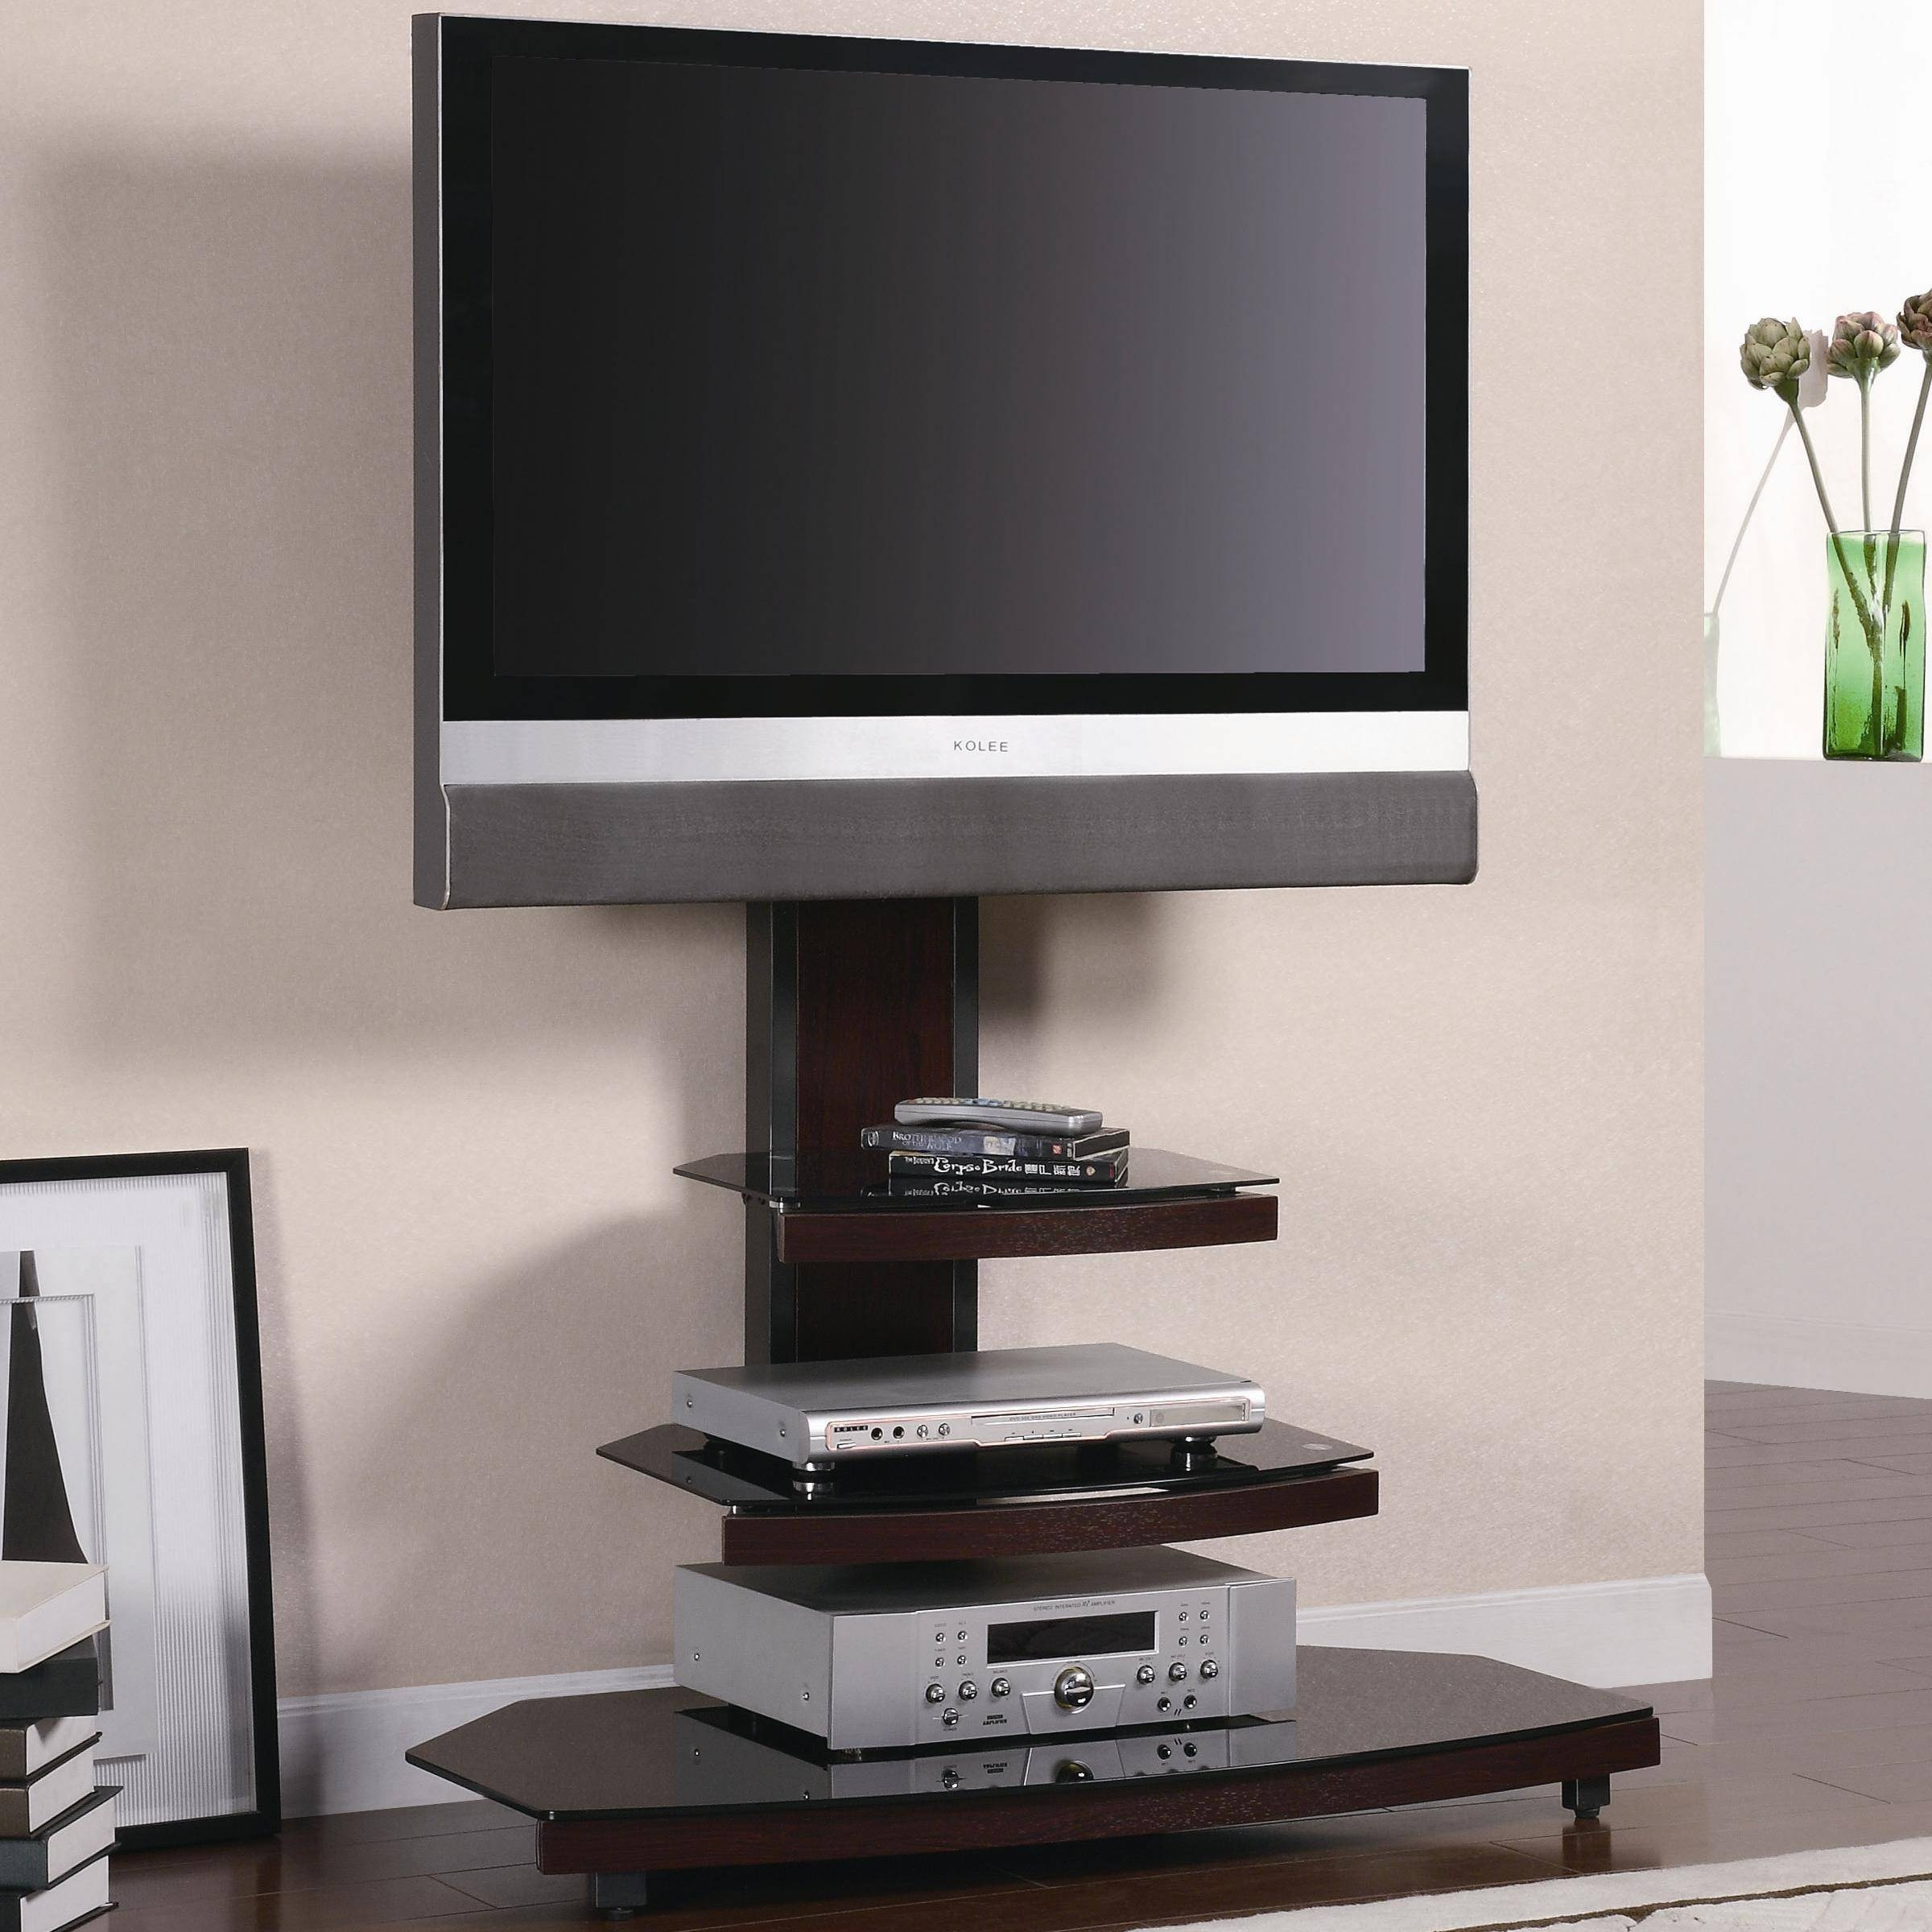 Sense Of Style Tv Stands - Home Decorating Designs for Sleek Tv Stands (Image 8 of 15)